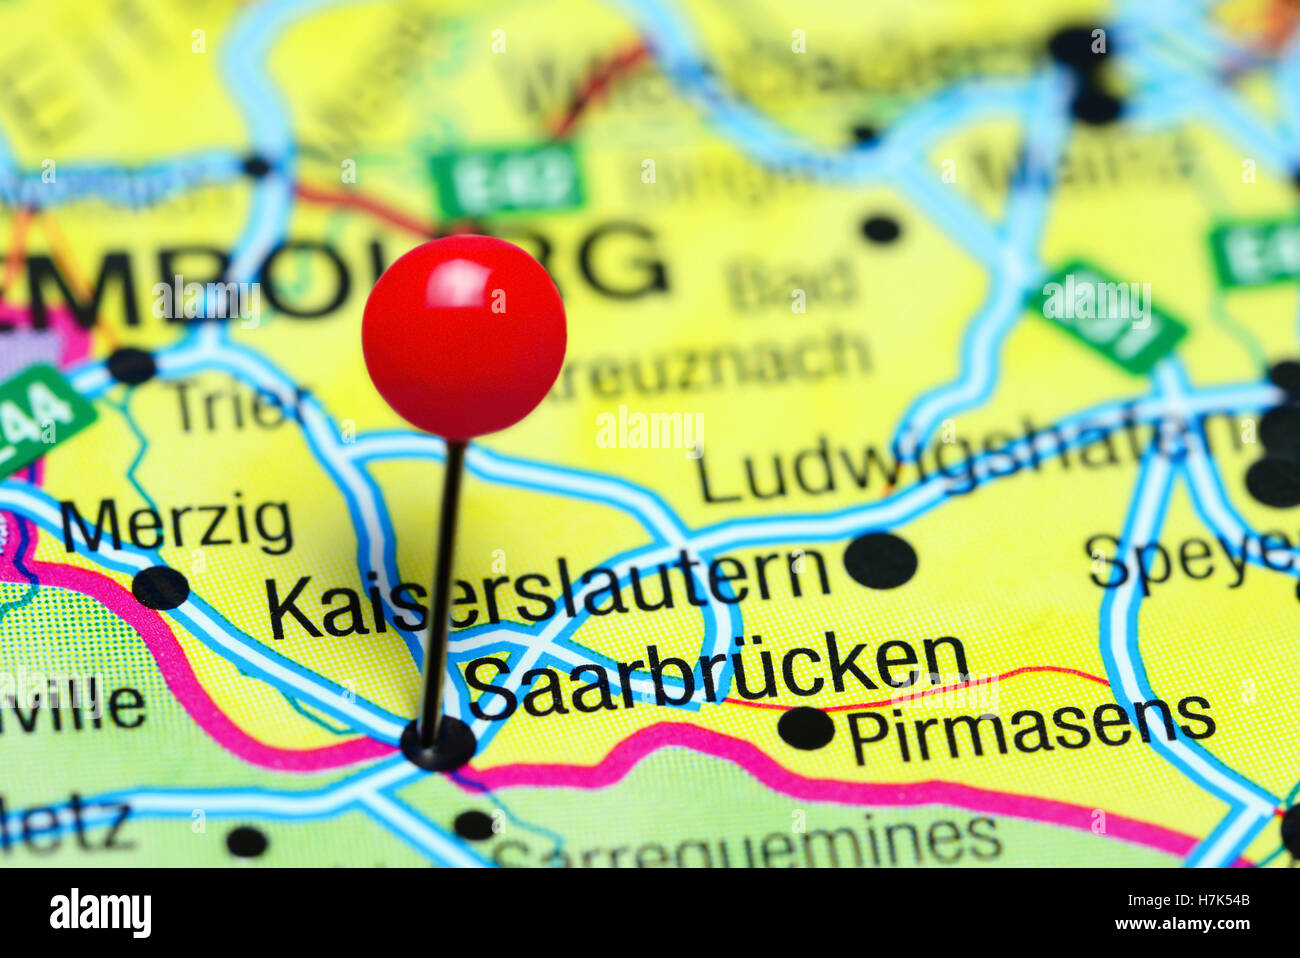 Saarbrucken pinned on a map of Germany Stock Photo